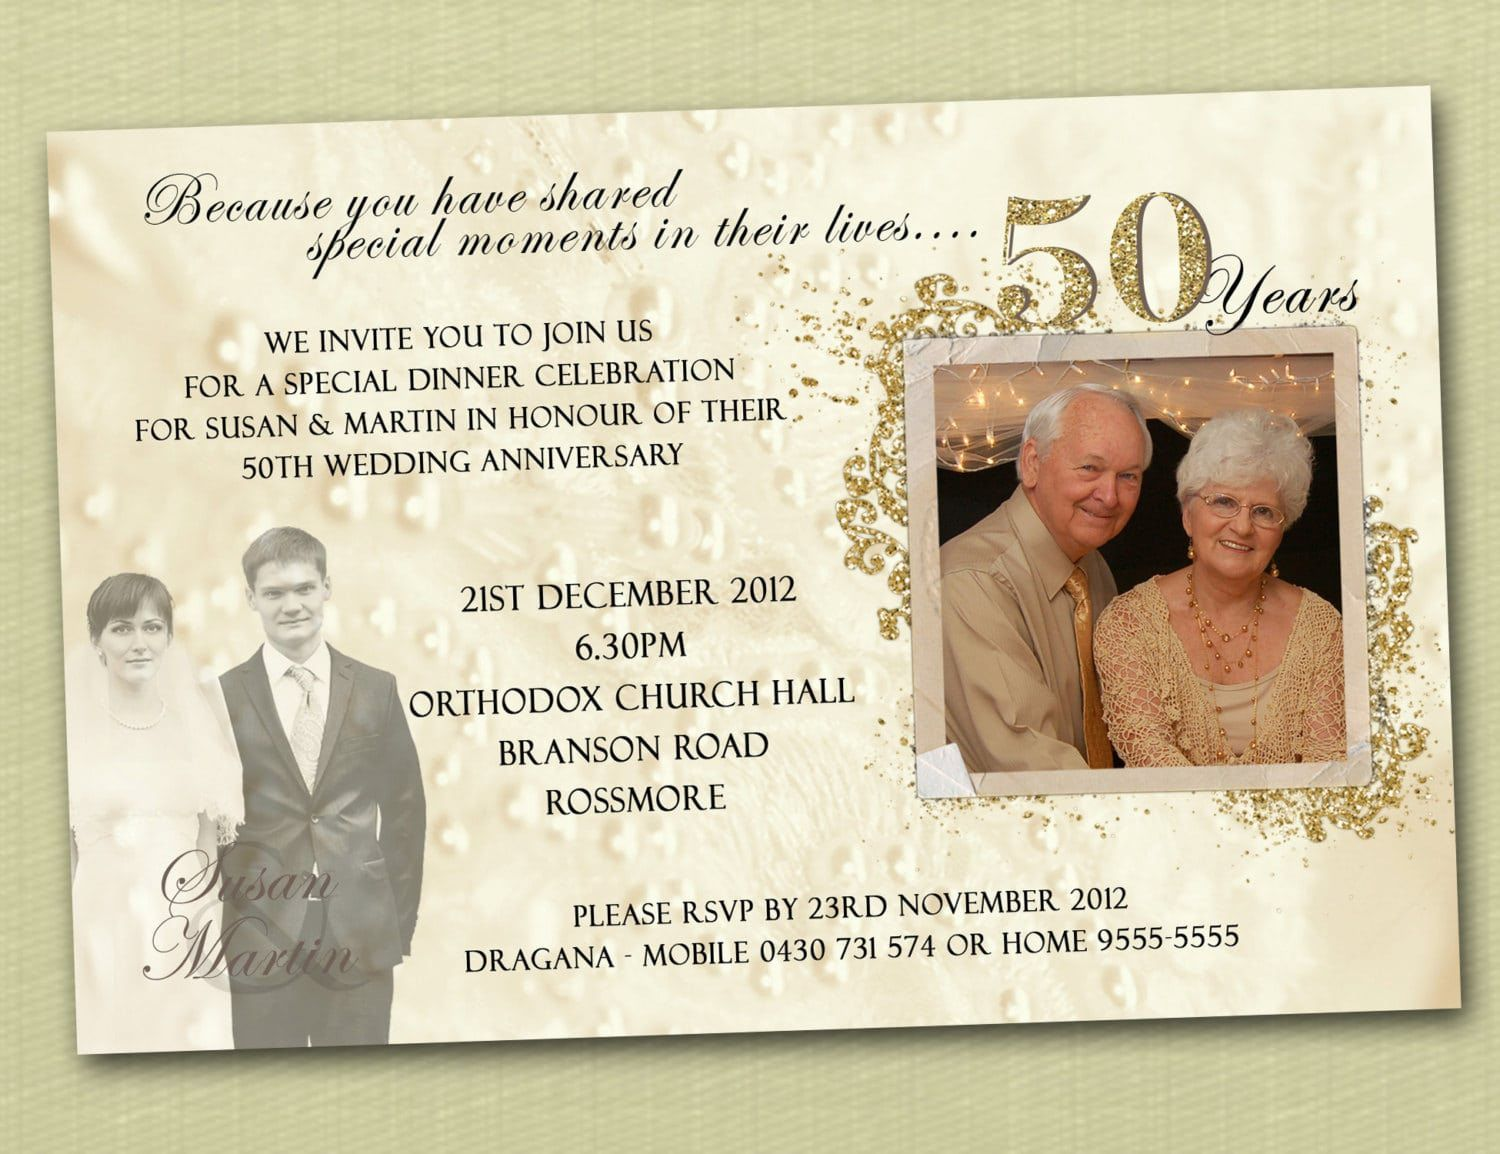 009 Exceptional 50th Anniversary Party Invitation Template High Def  Templates Golden Wedding Uk Microsoft Word FreeFull